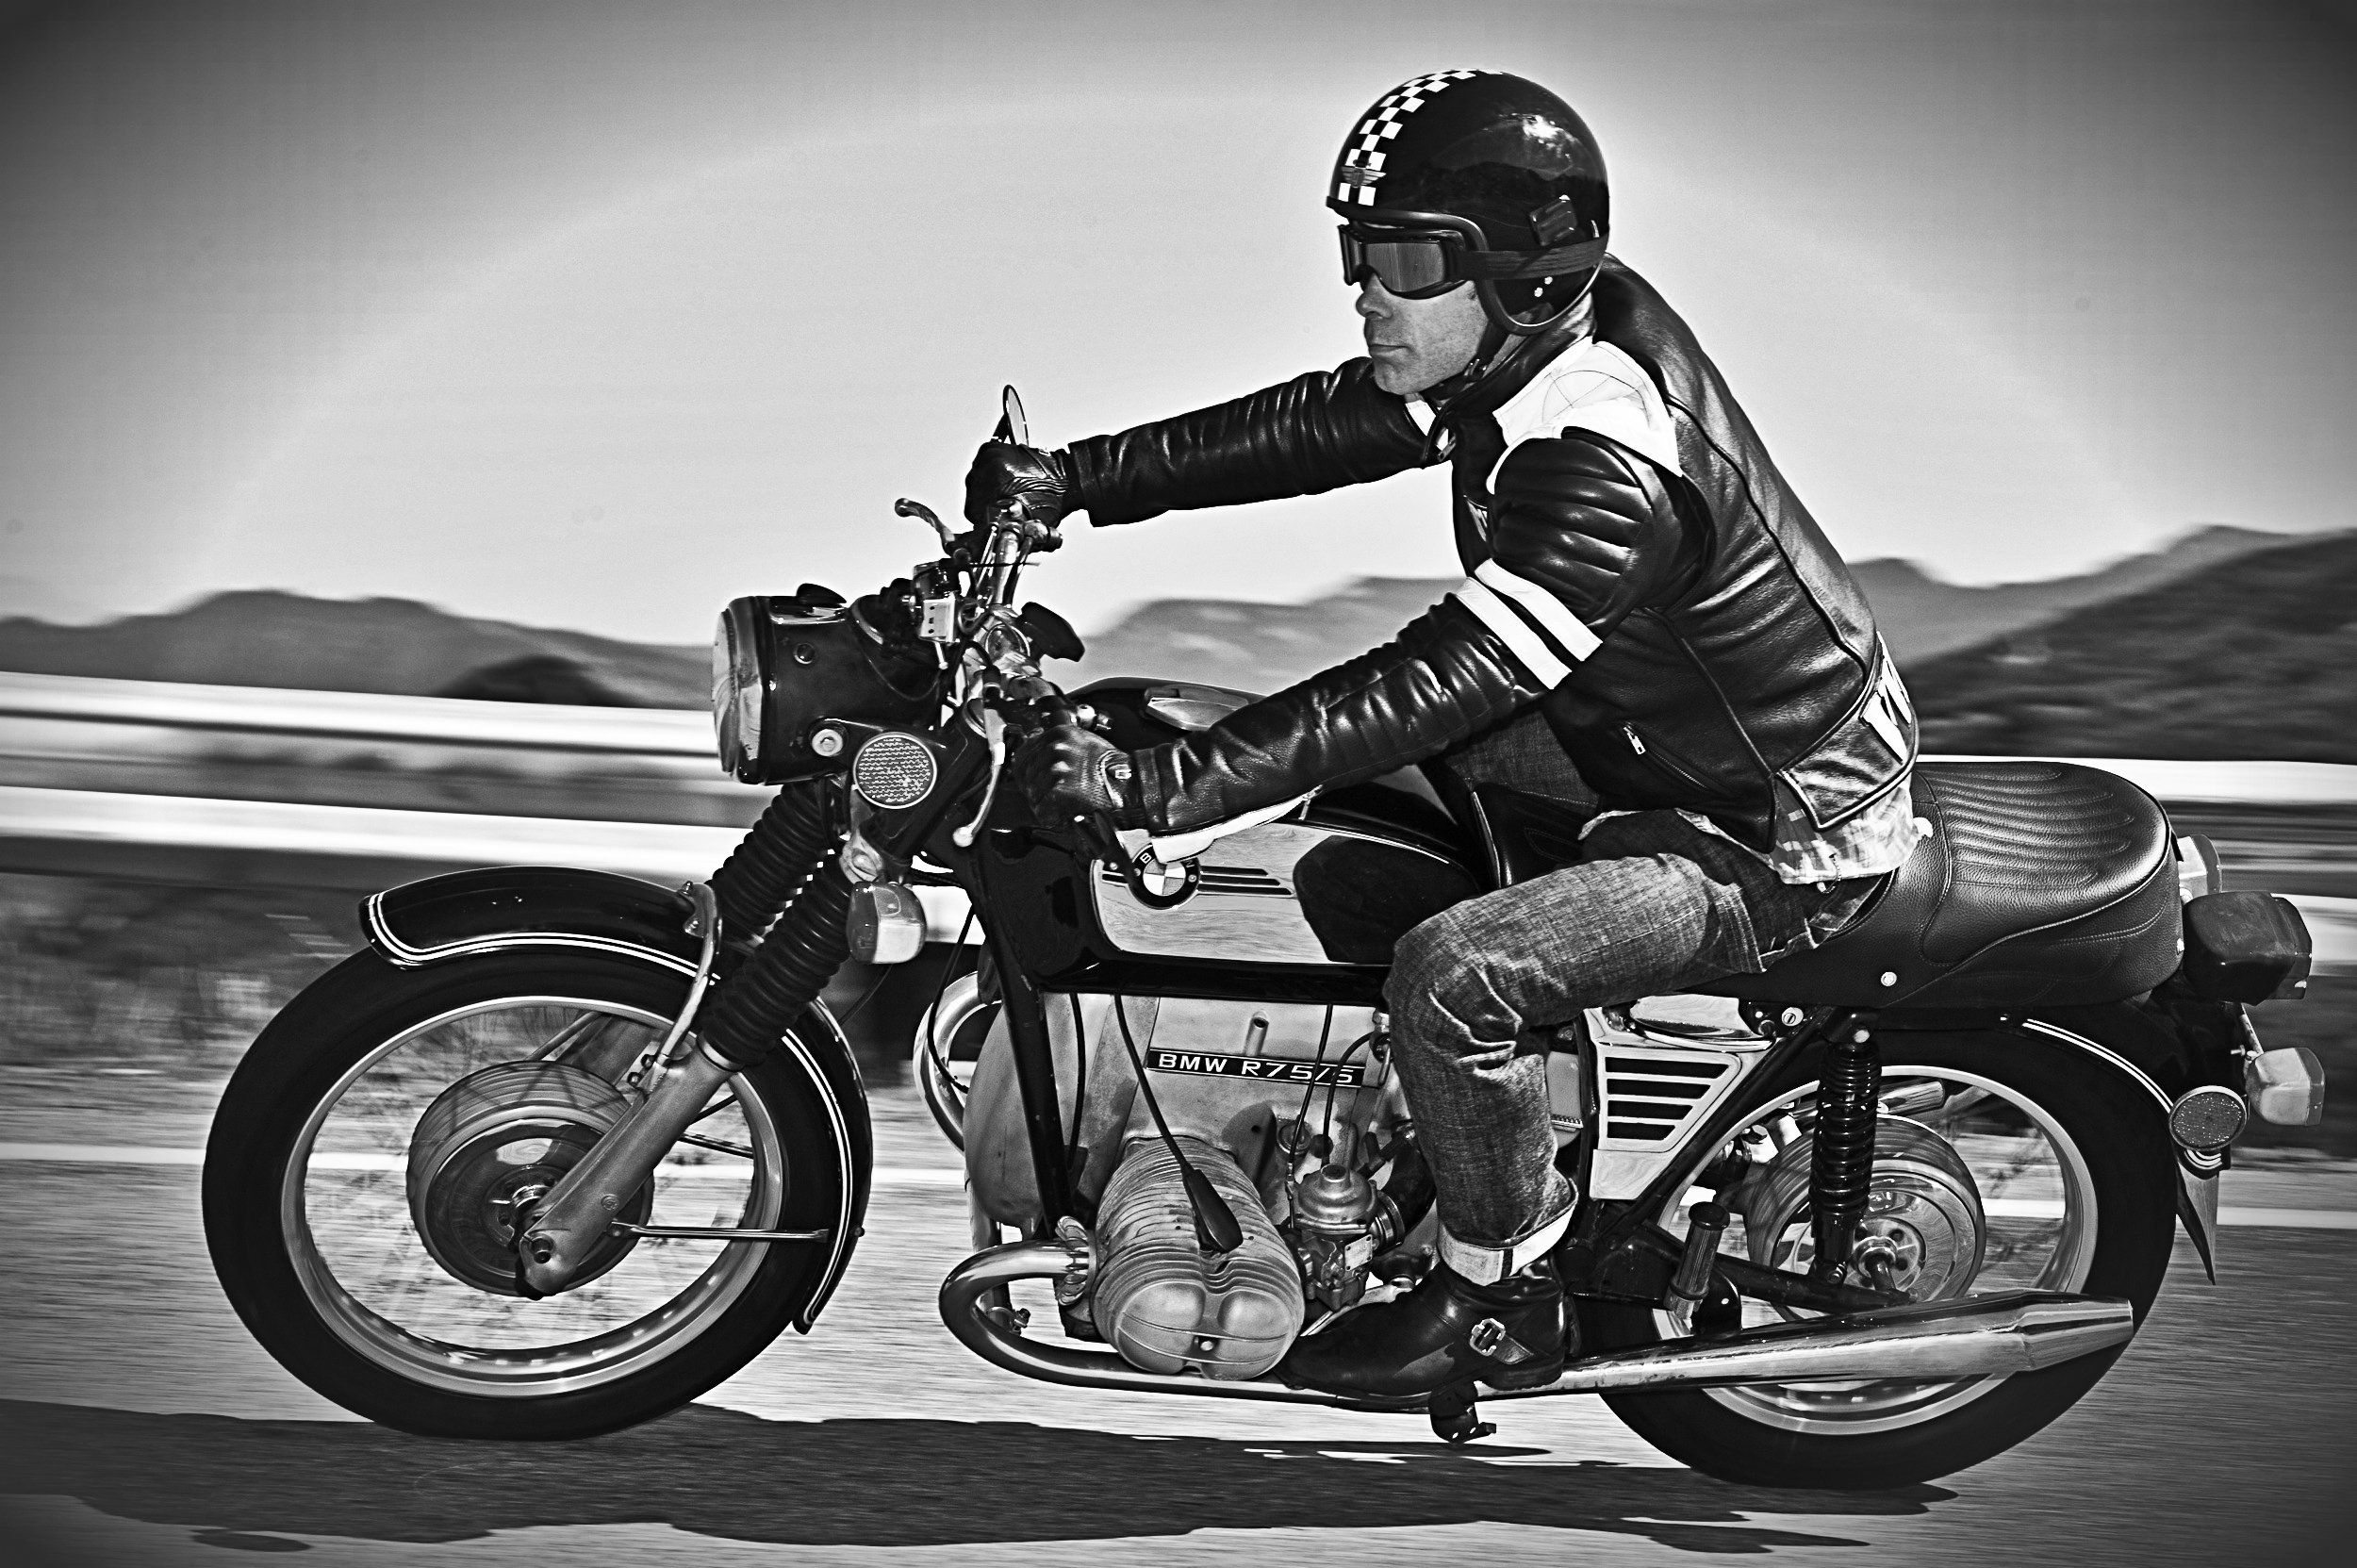 Vintage Motorcycle Wallpaper High Quality Free Download With